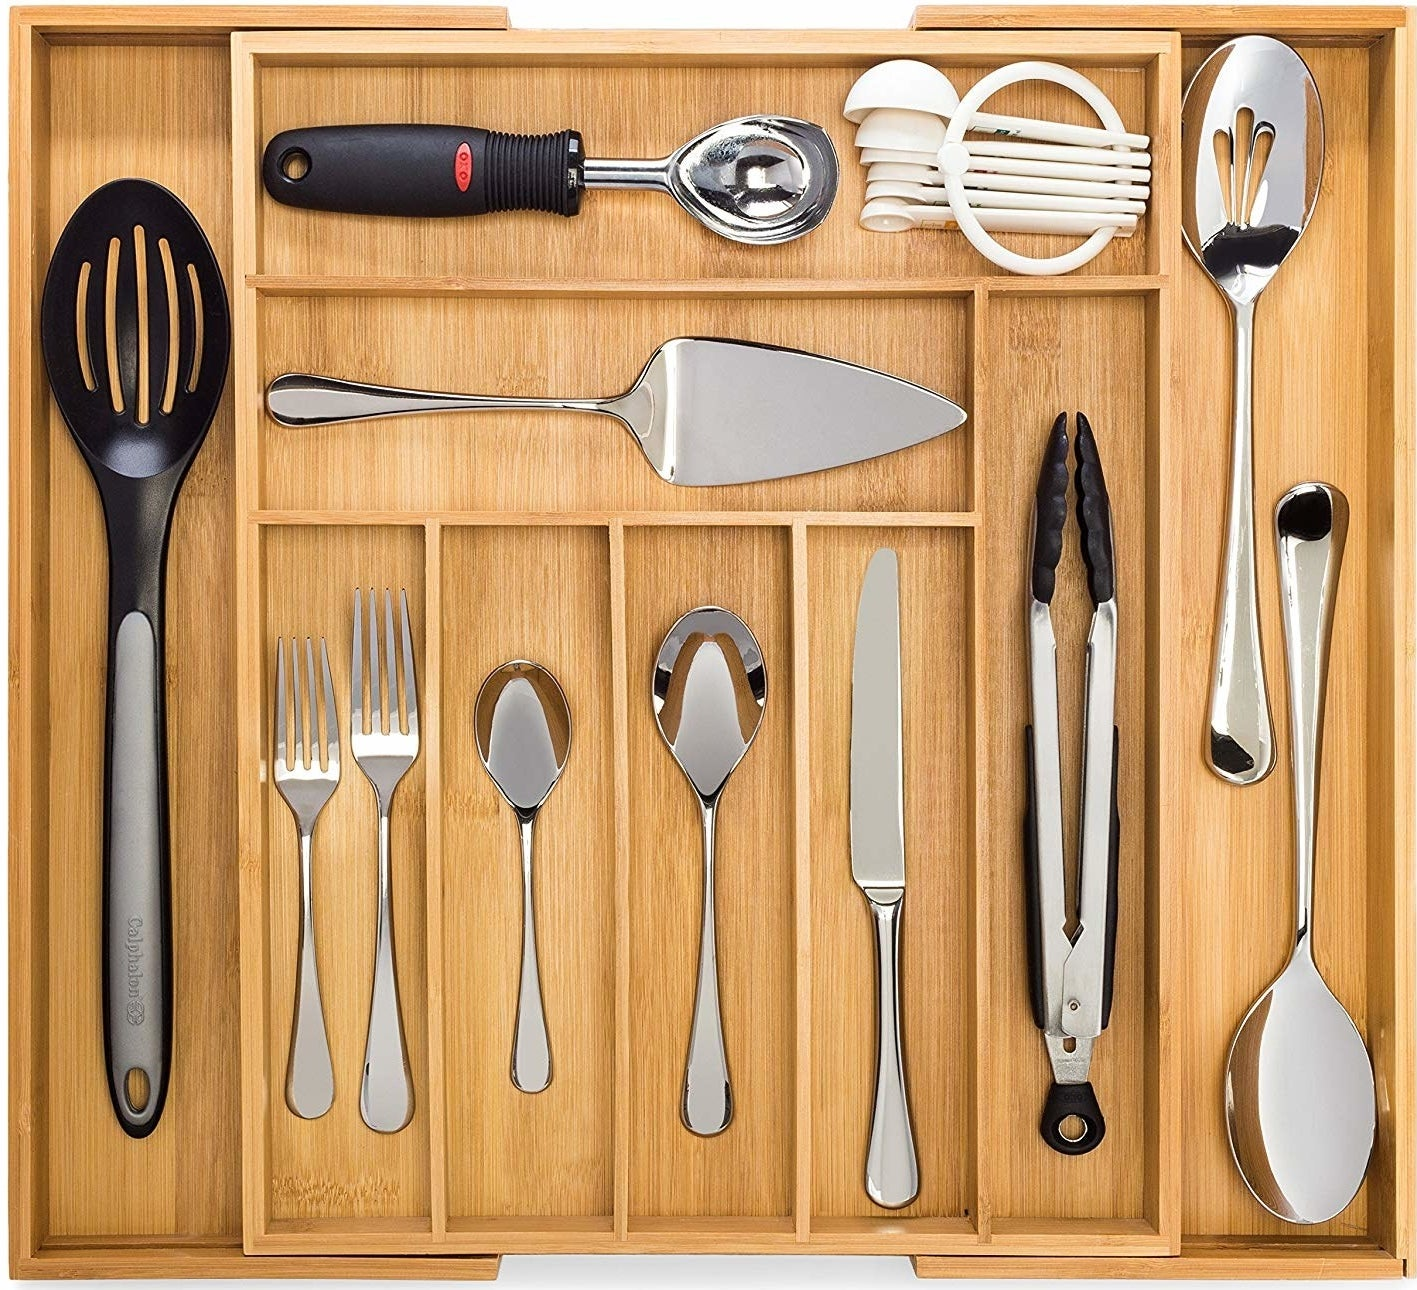 The organizer holding cutlery and other cooking utensils